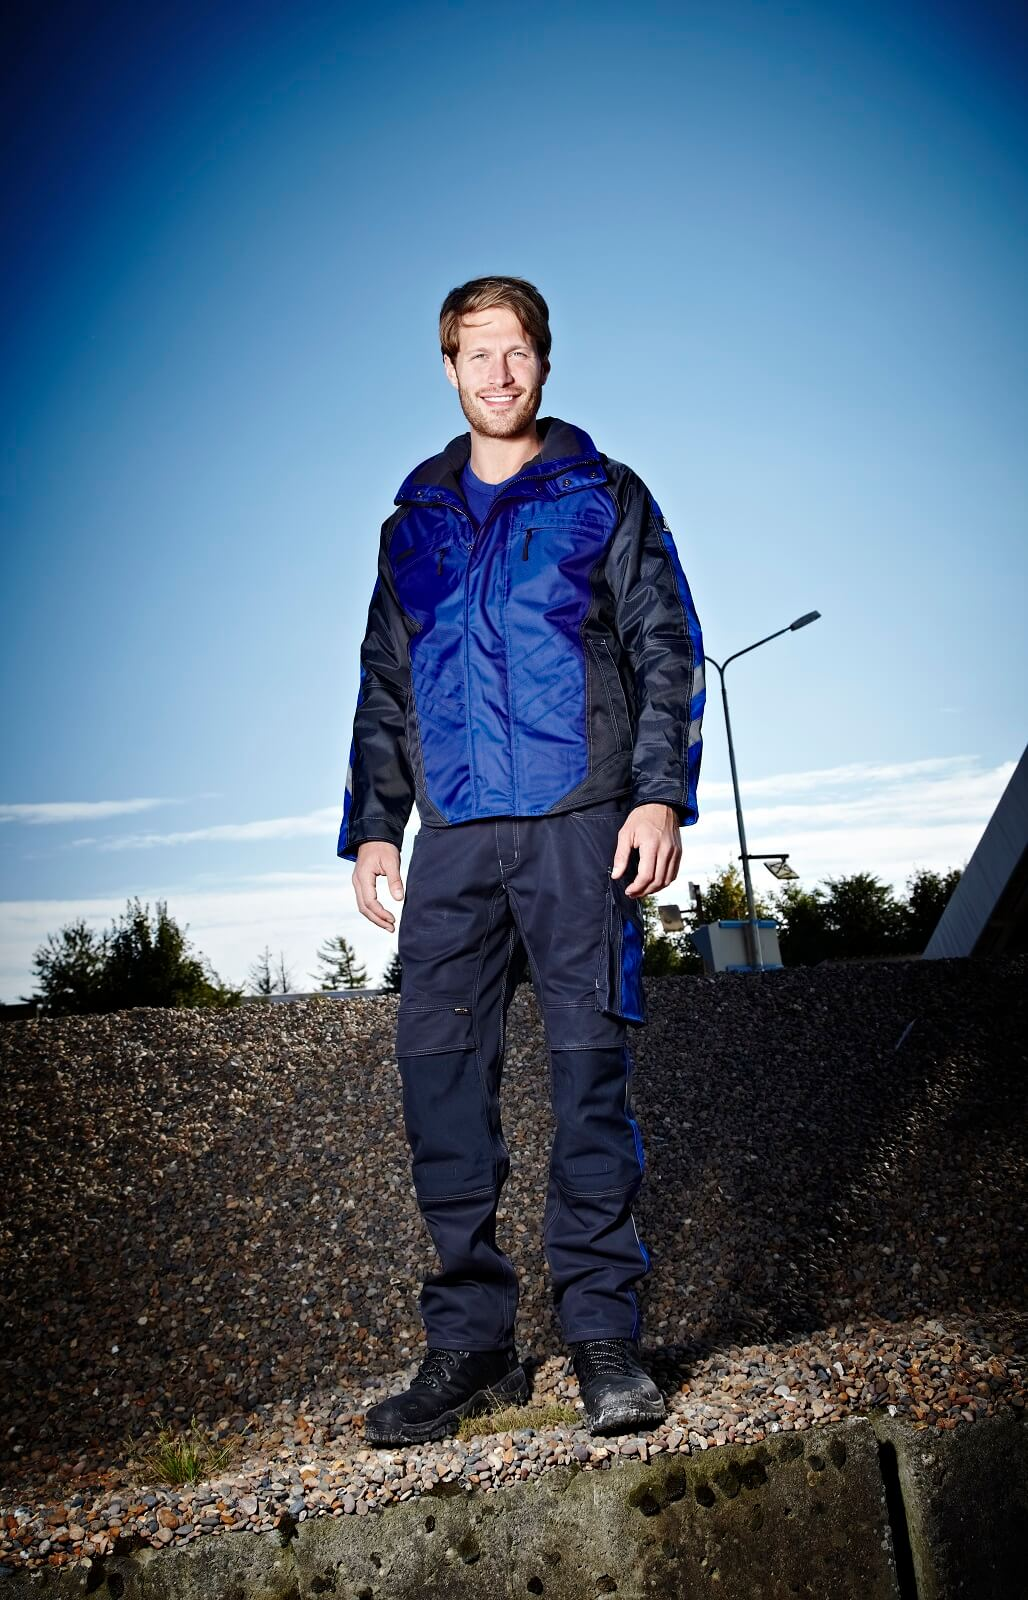 MASCOT® UNIQUE Workwear - Navy & Royal blue - Environment